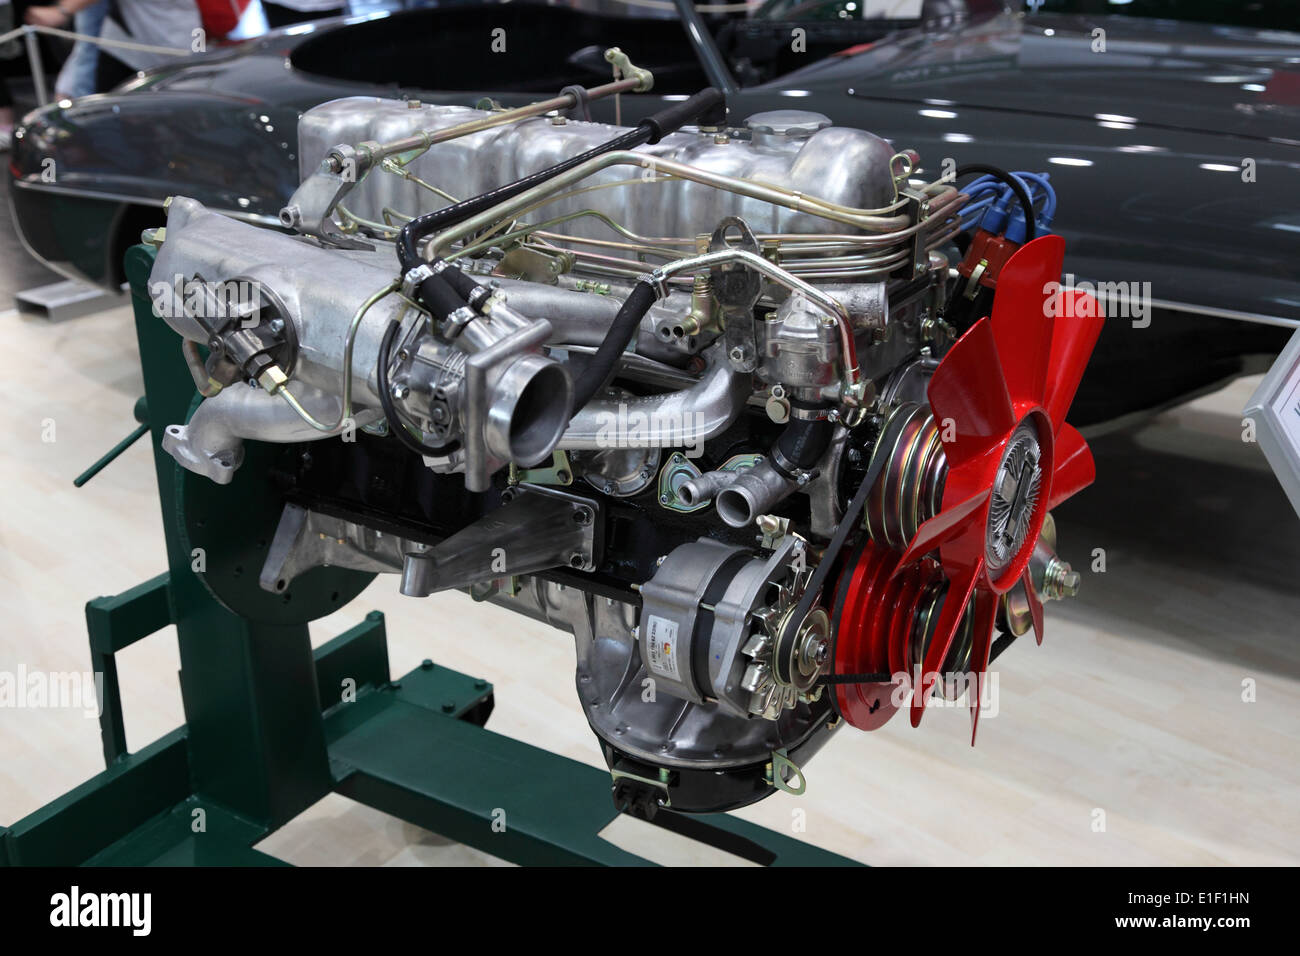 Restored Mercedes Benz SL300 Motor at the AMI - Auto Mobile International Trade Fair on June 1st, 2014 - Stock Image